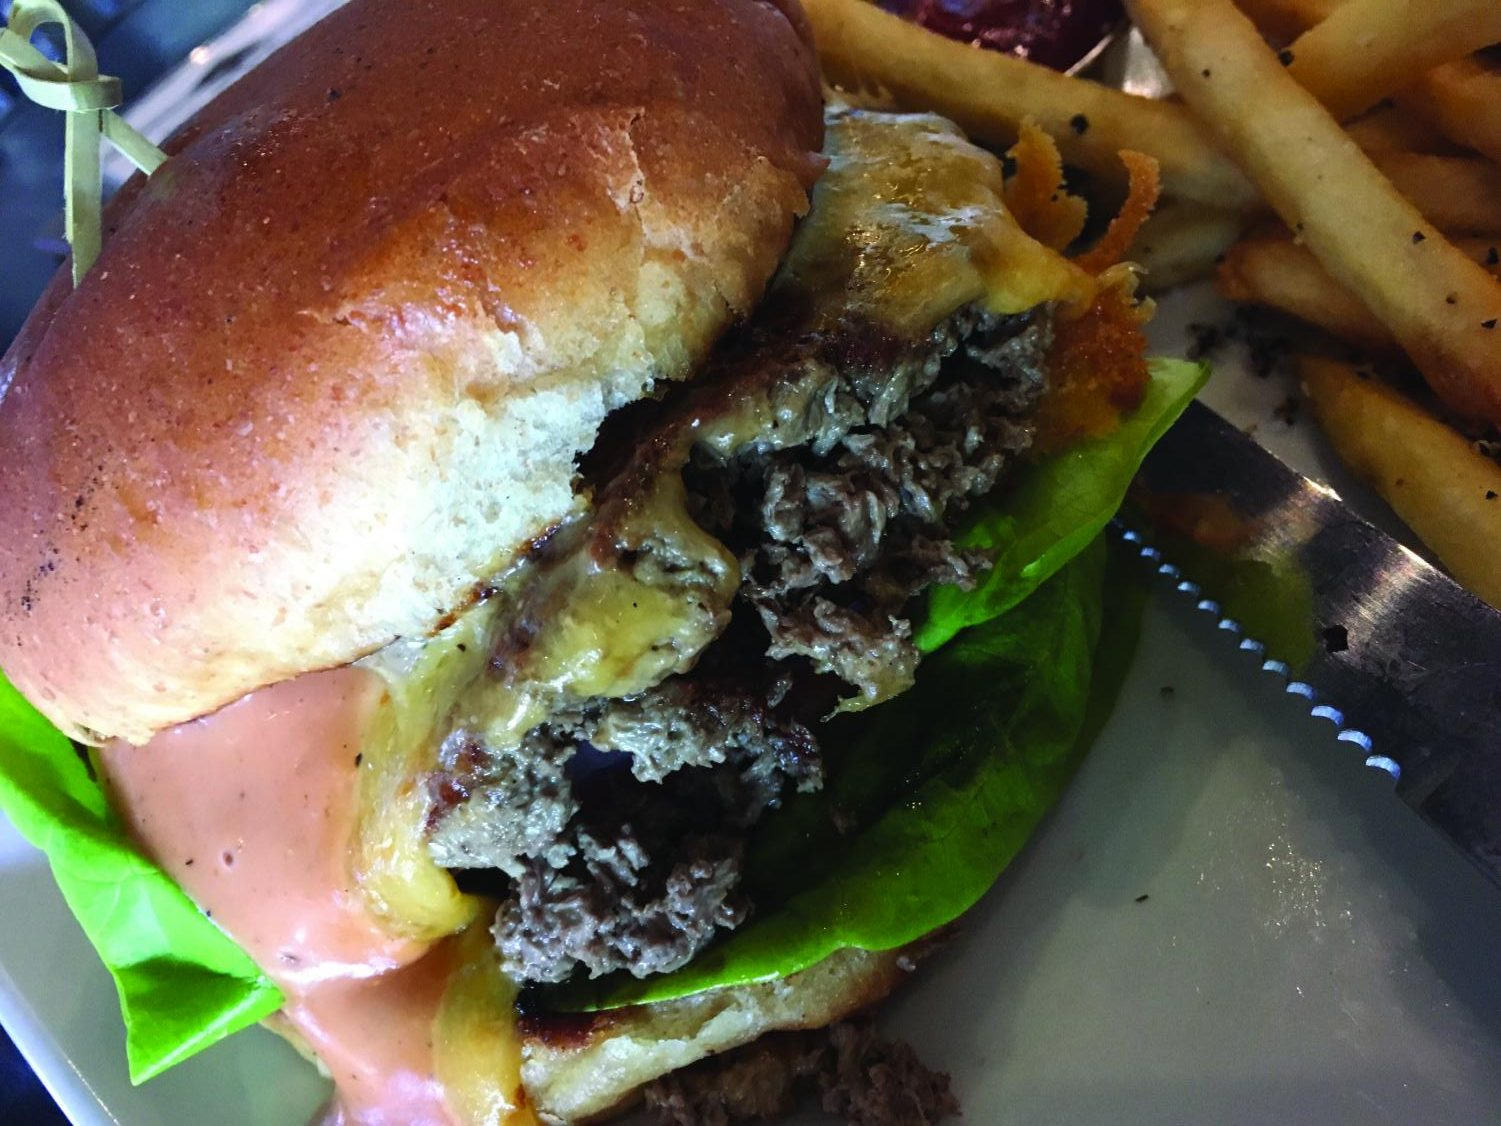 Cascadia Public House offers a vegetarian, meat-like hamburger that contains heme.